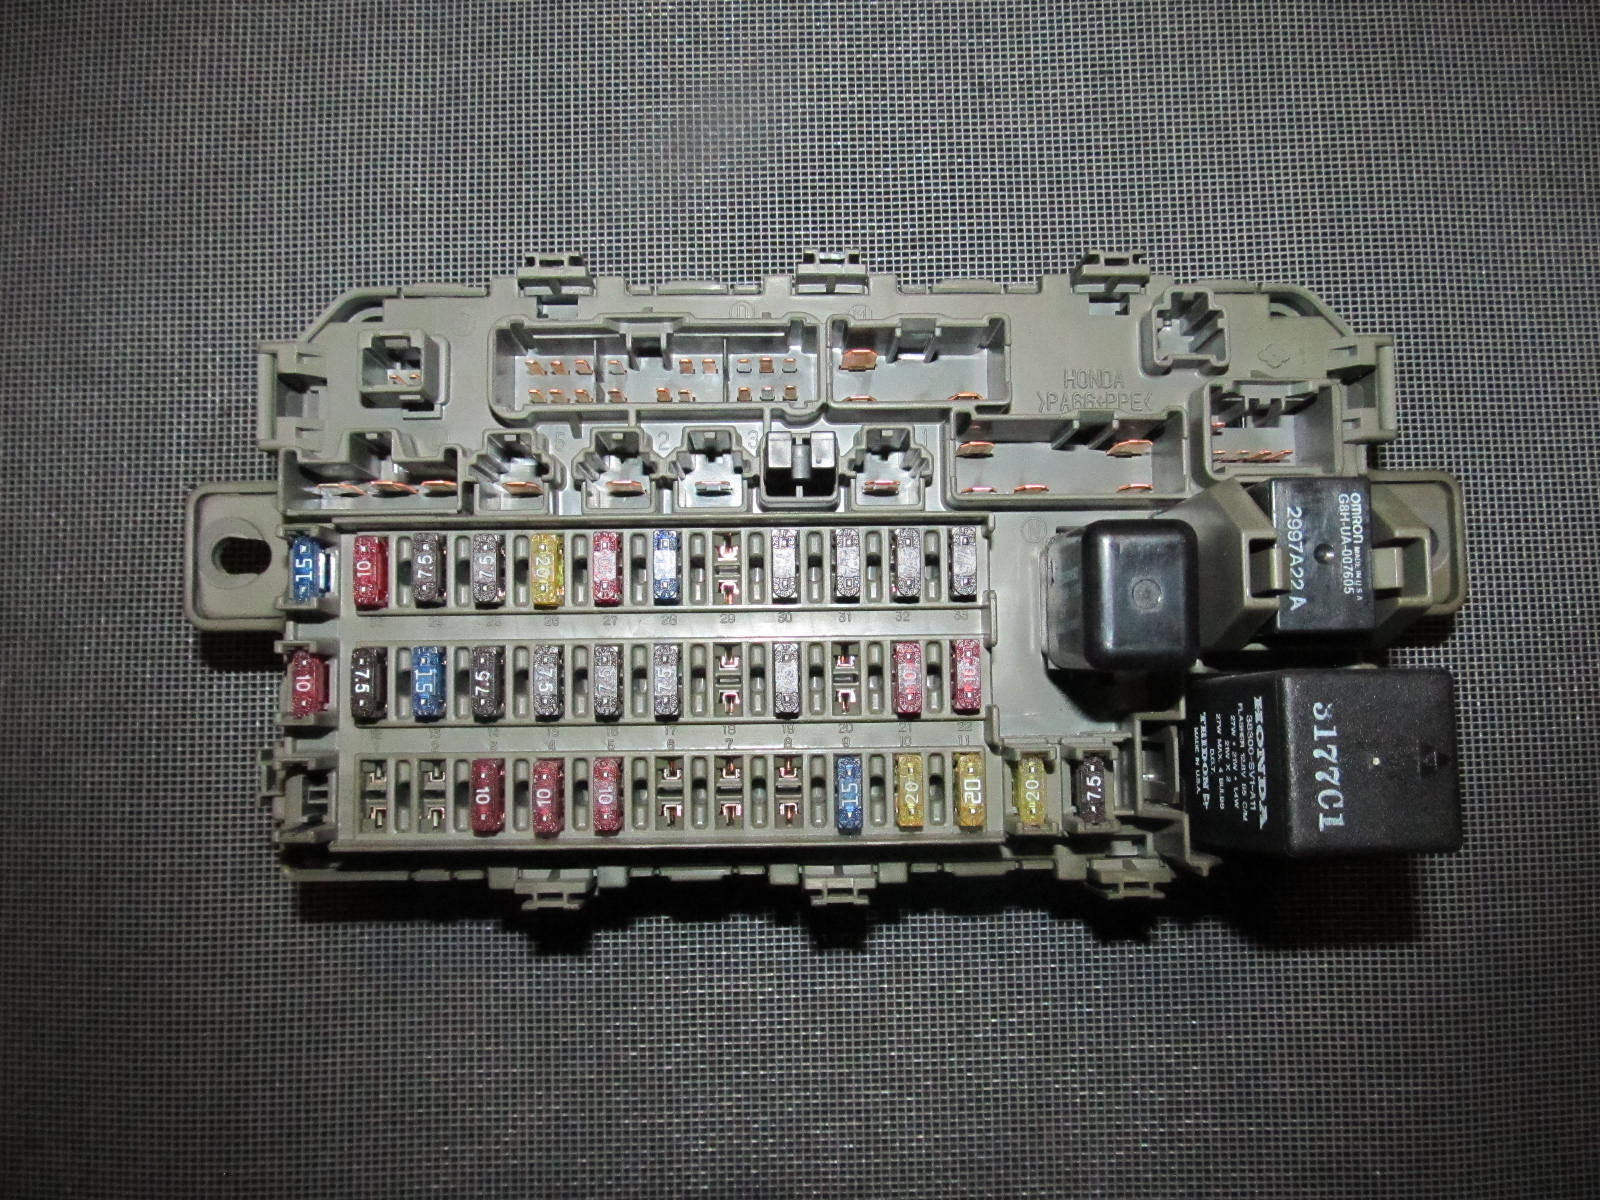 96 240sx fuse box diagram 96 image wiring diagram s14 interior fuse box diagram s14 auto wiring diagram schematic on 96 240sx fuse box diagram